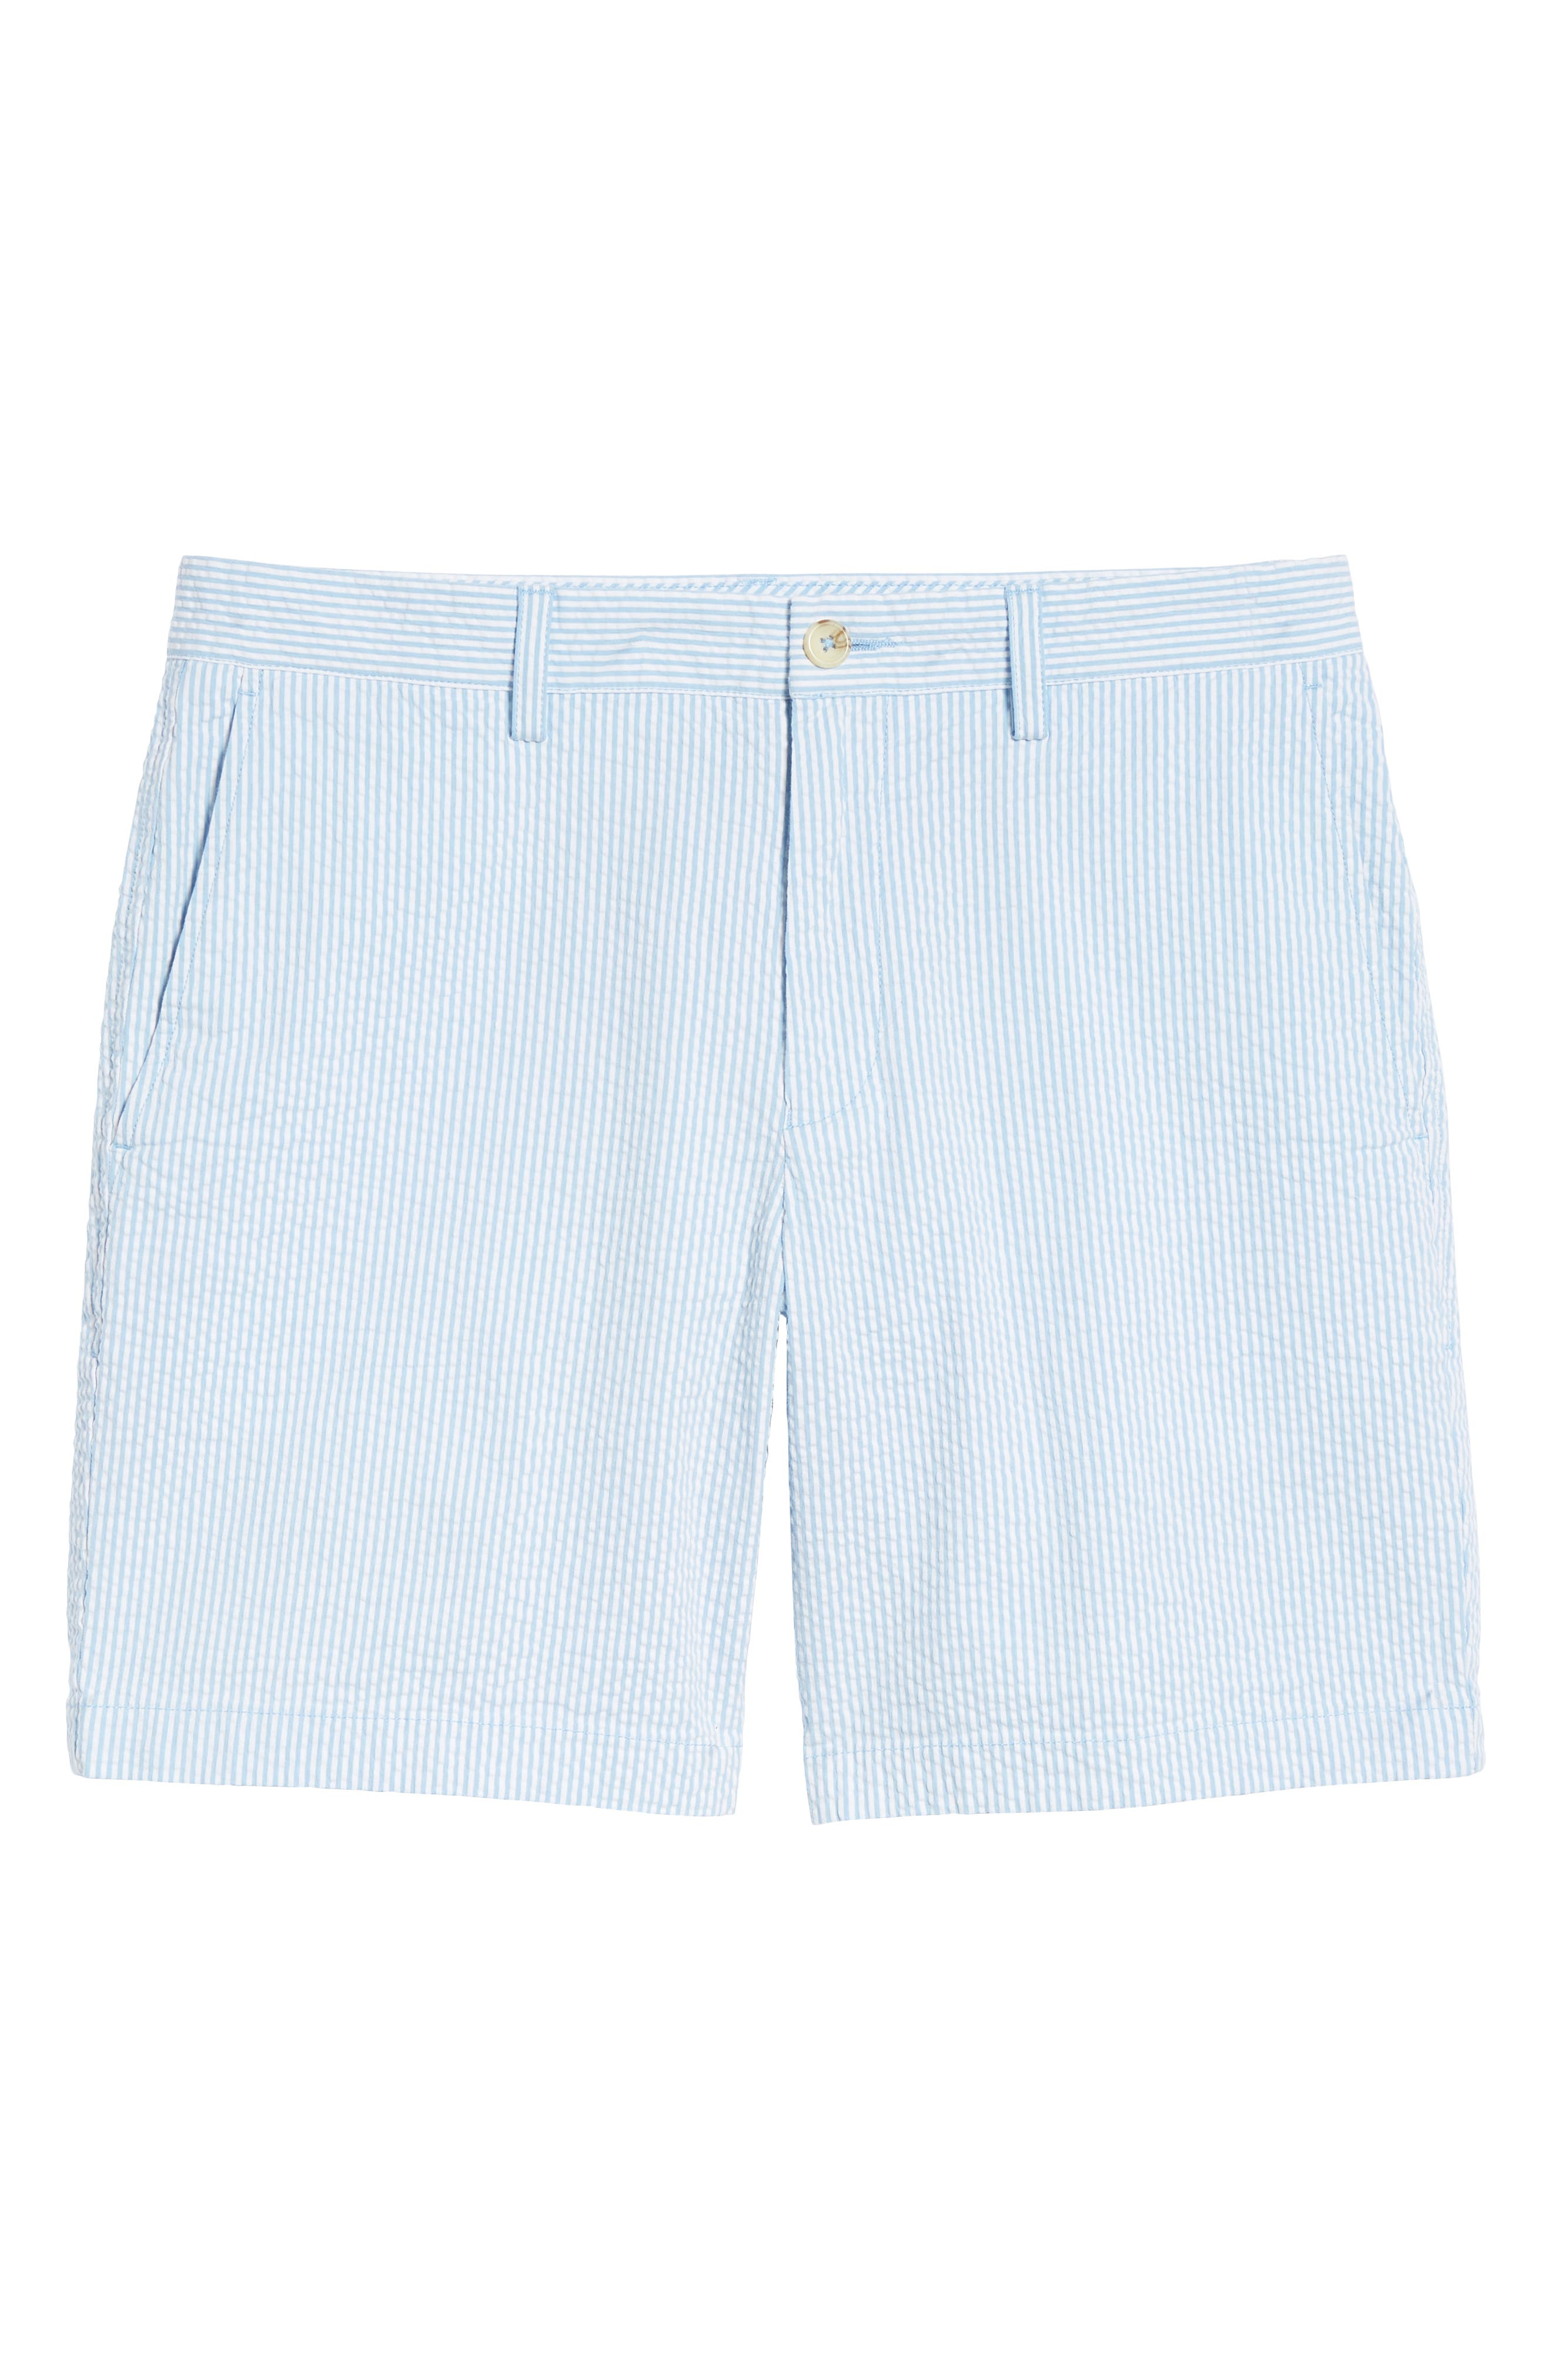 Stripe Seersucker Shorts,                             Alternate thumbnail 6, color,                             392